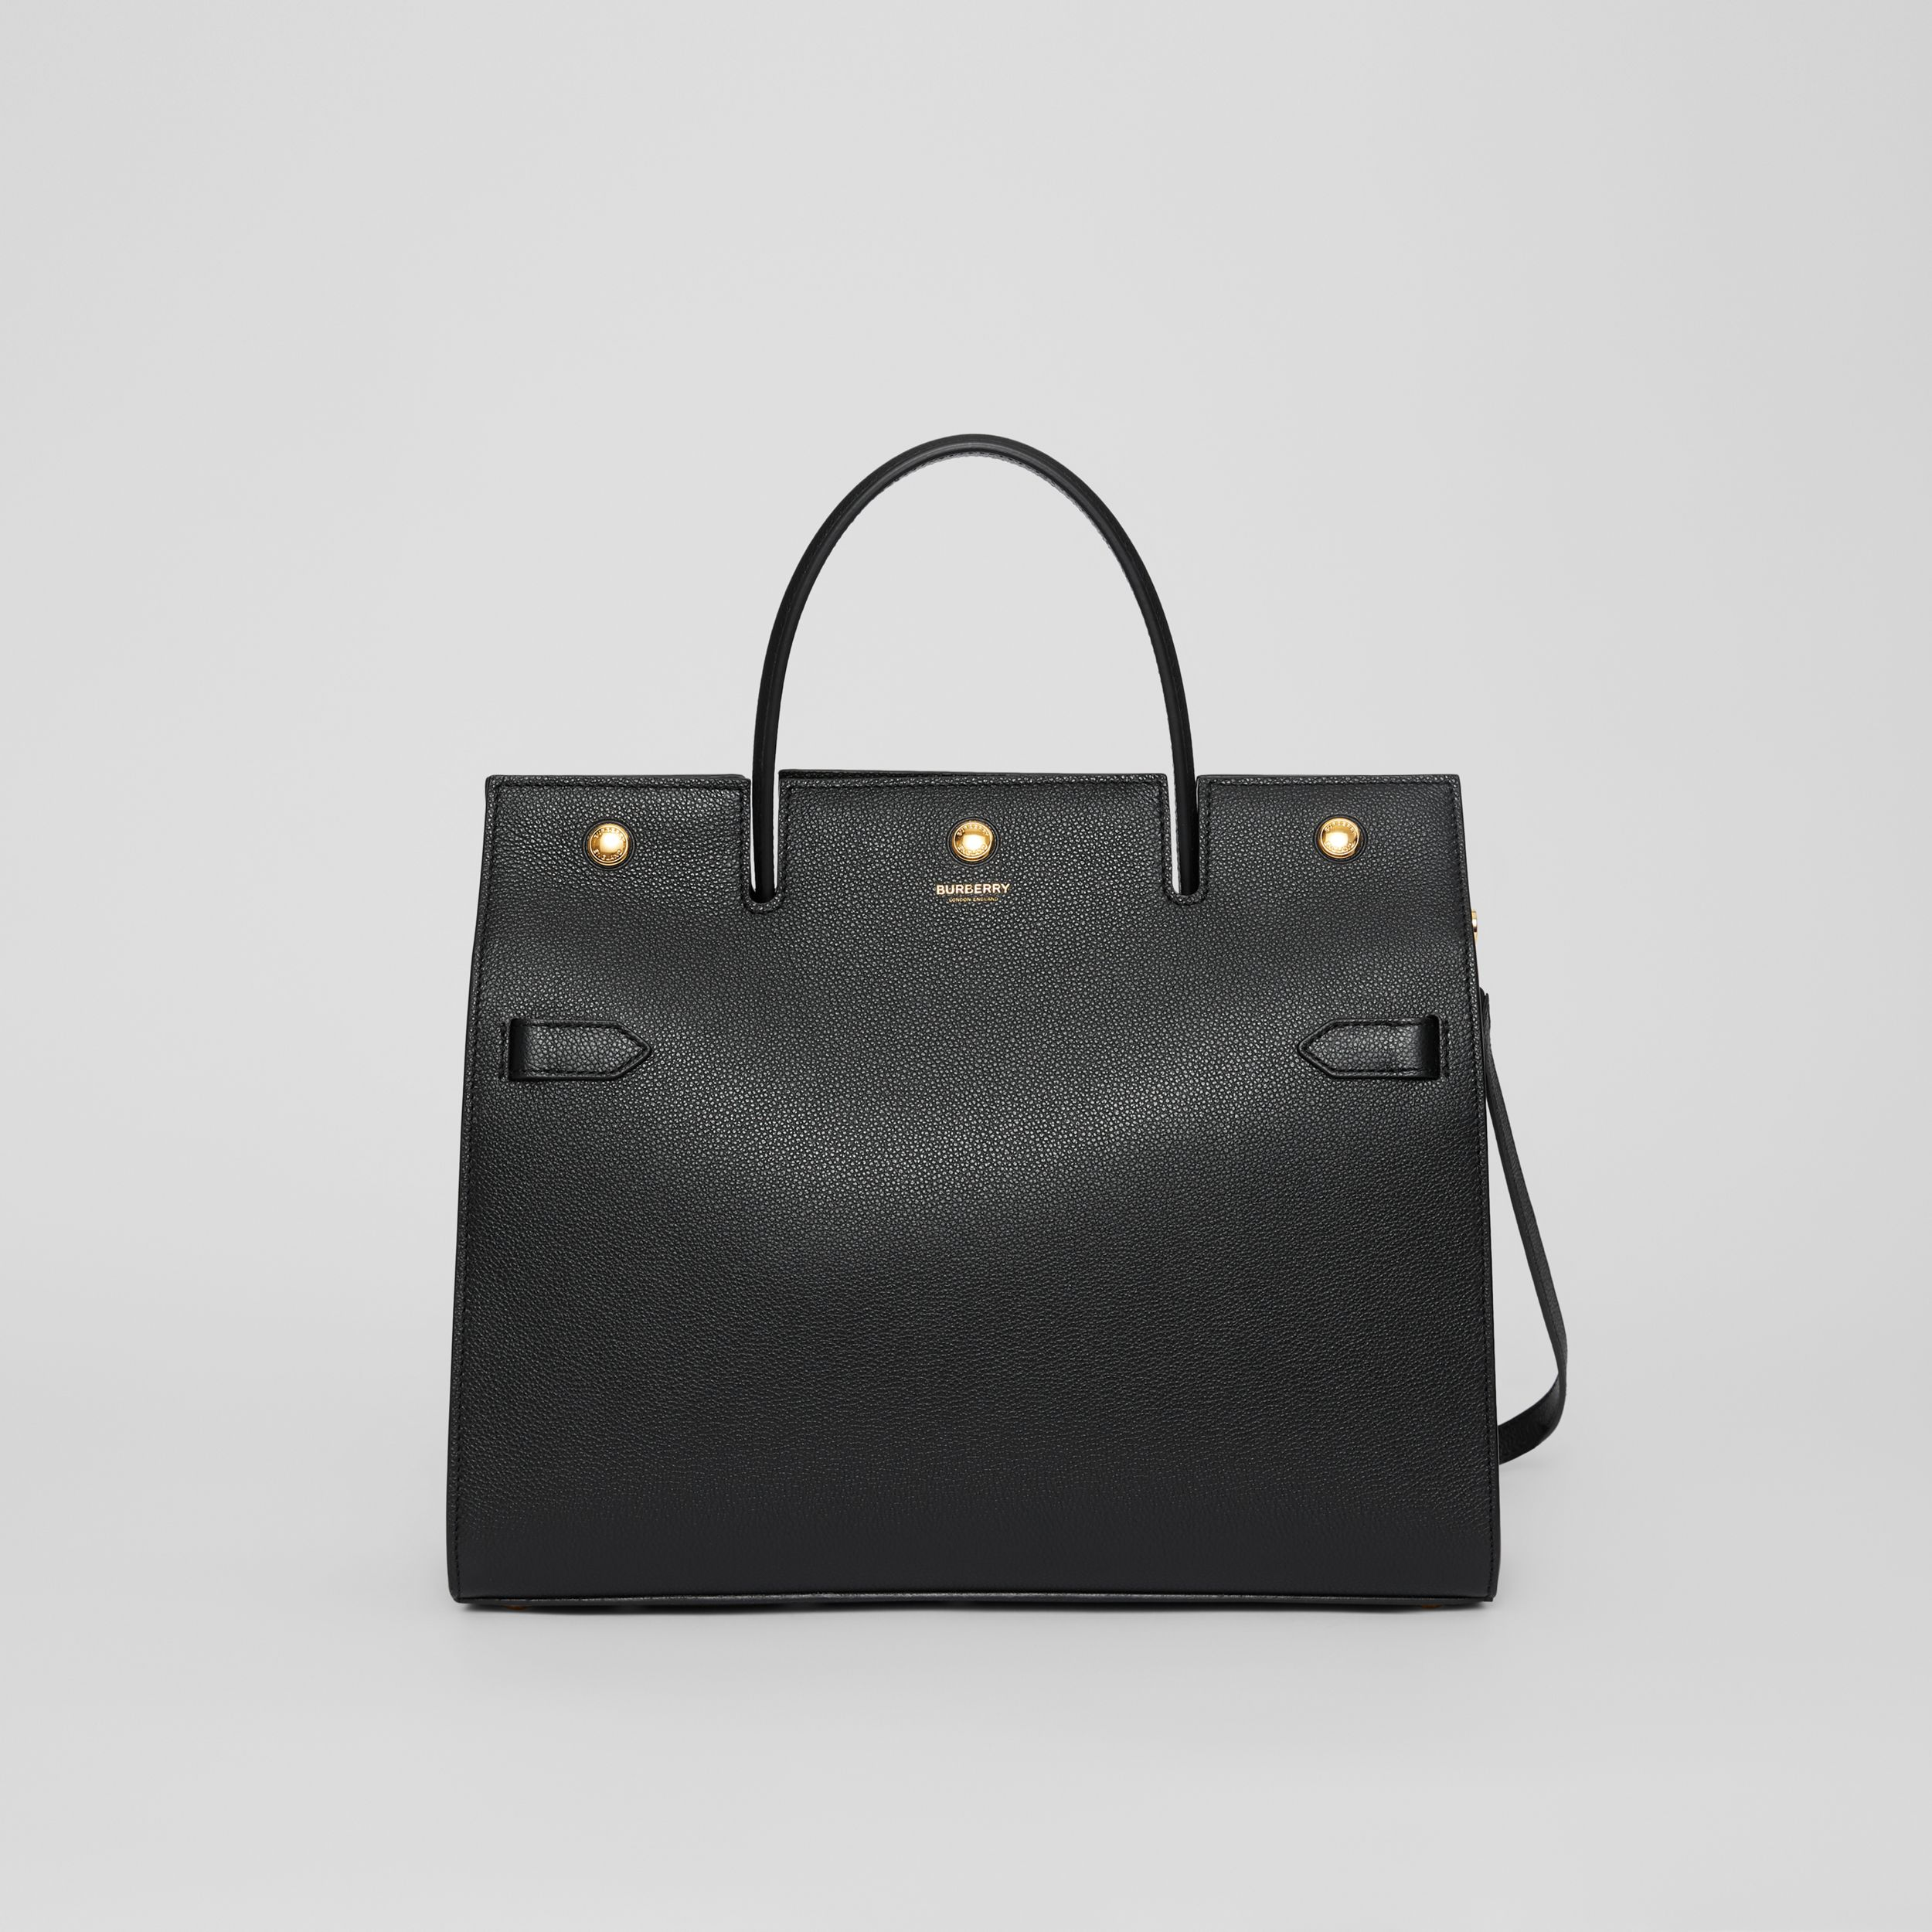 Medium Leather Title Bag in Black - Women | Burberry - 1